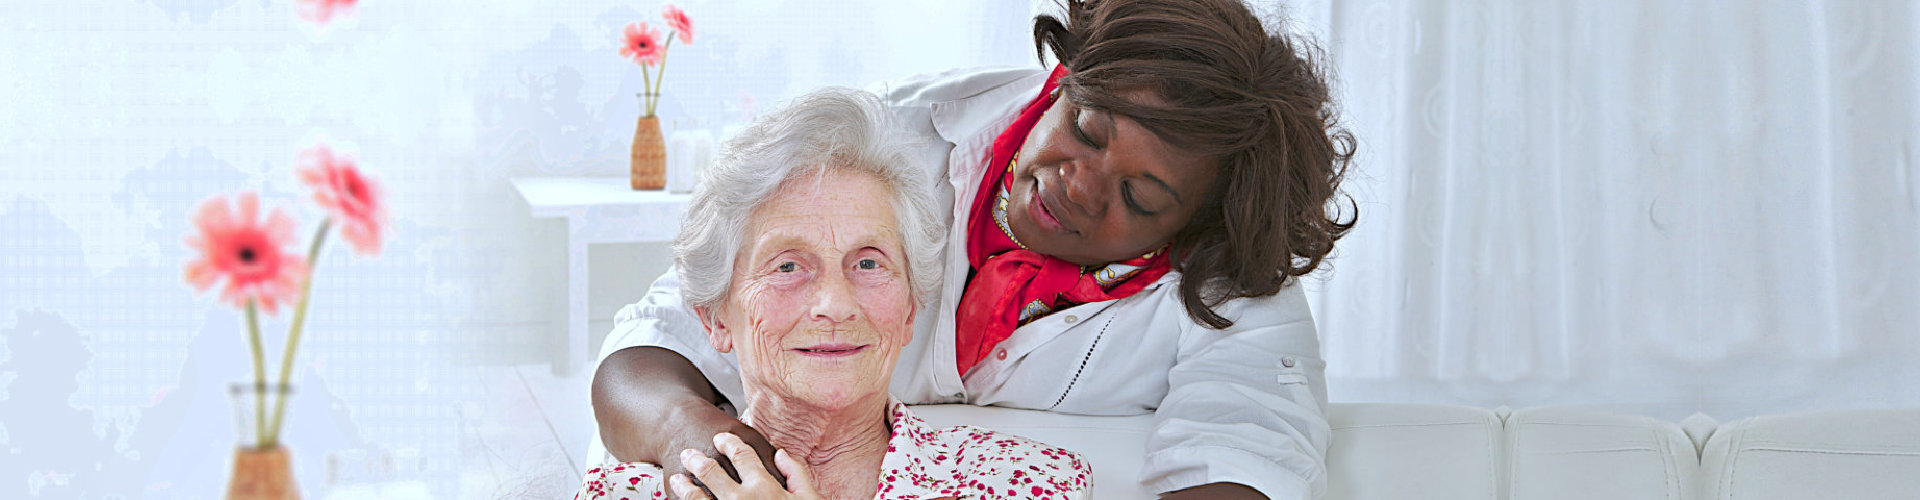 caregiver taking care of a senior woman